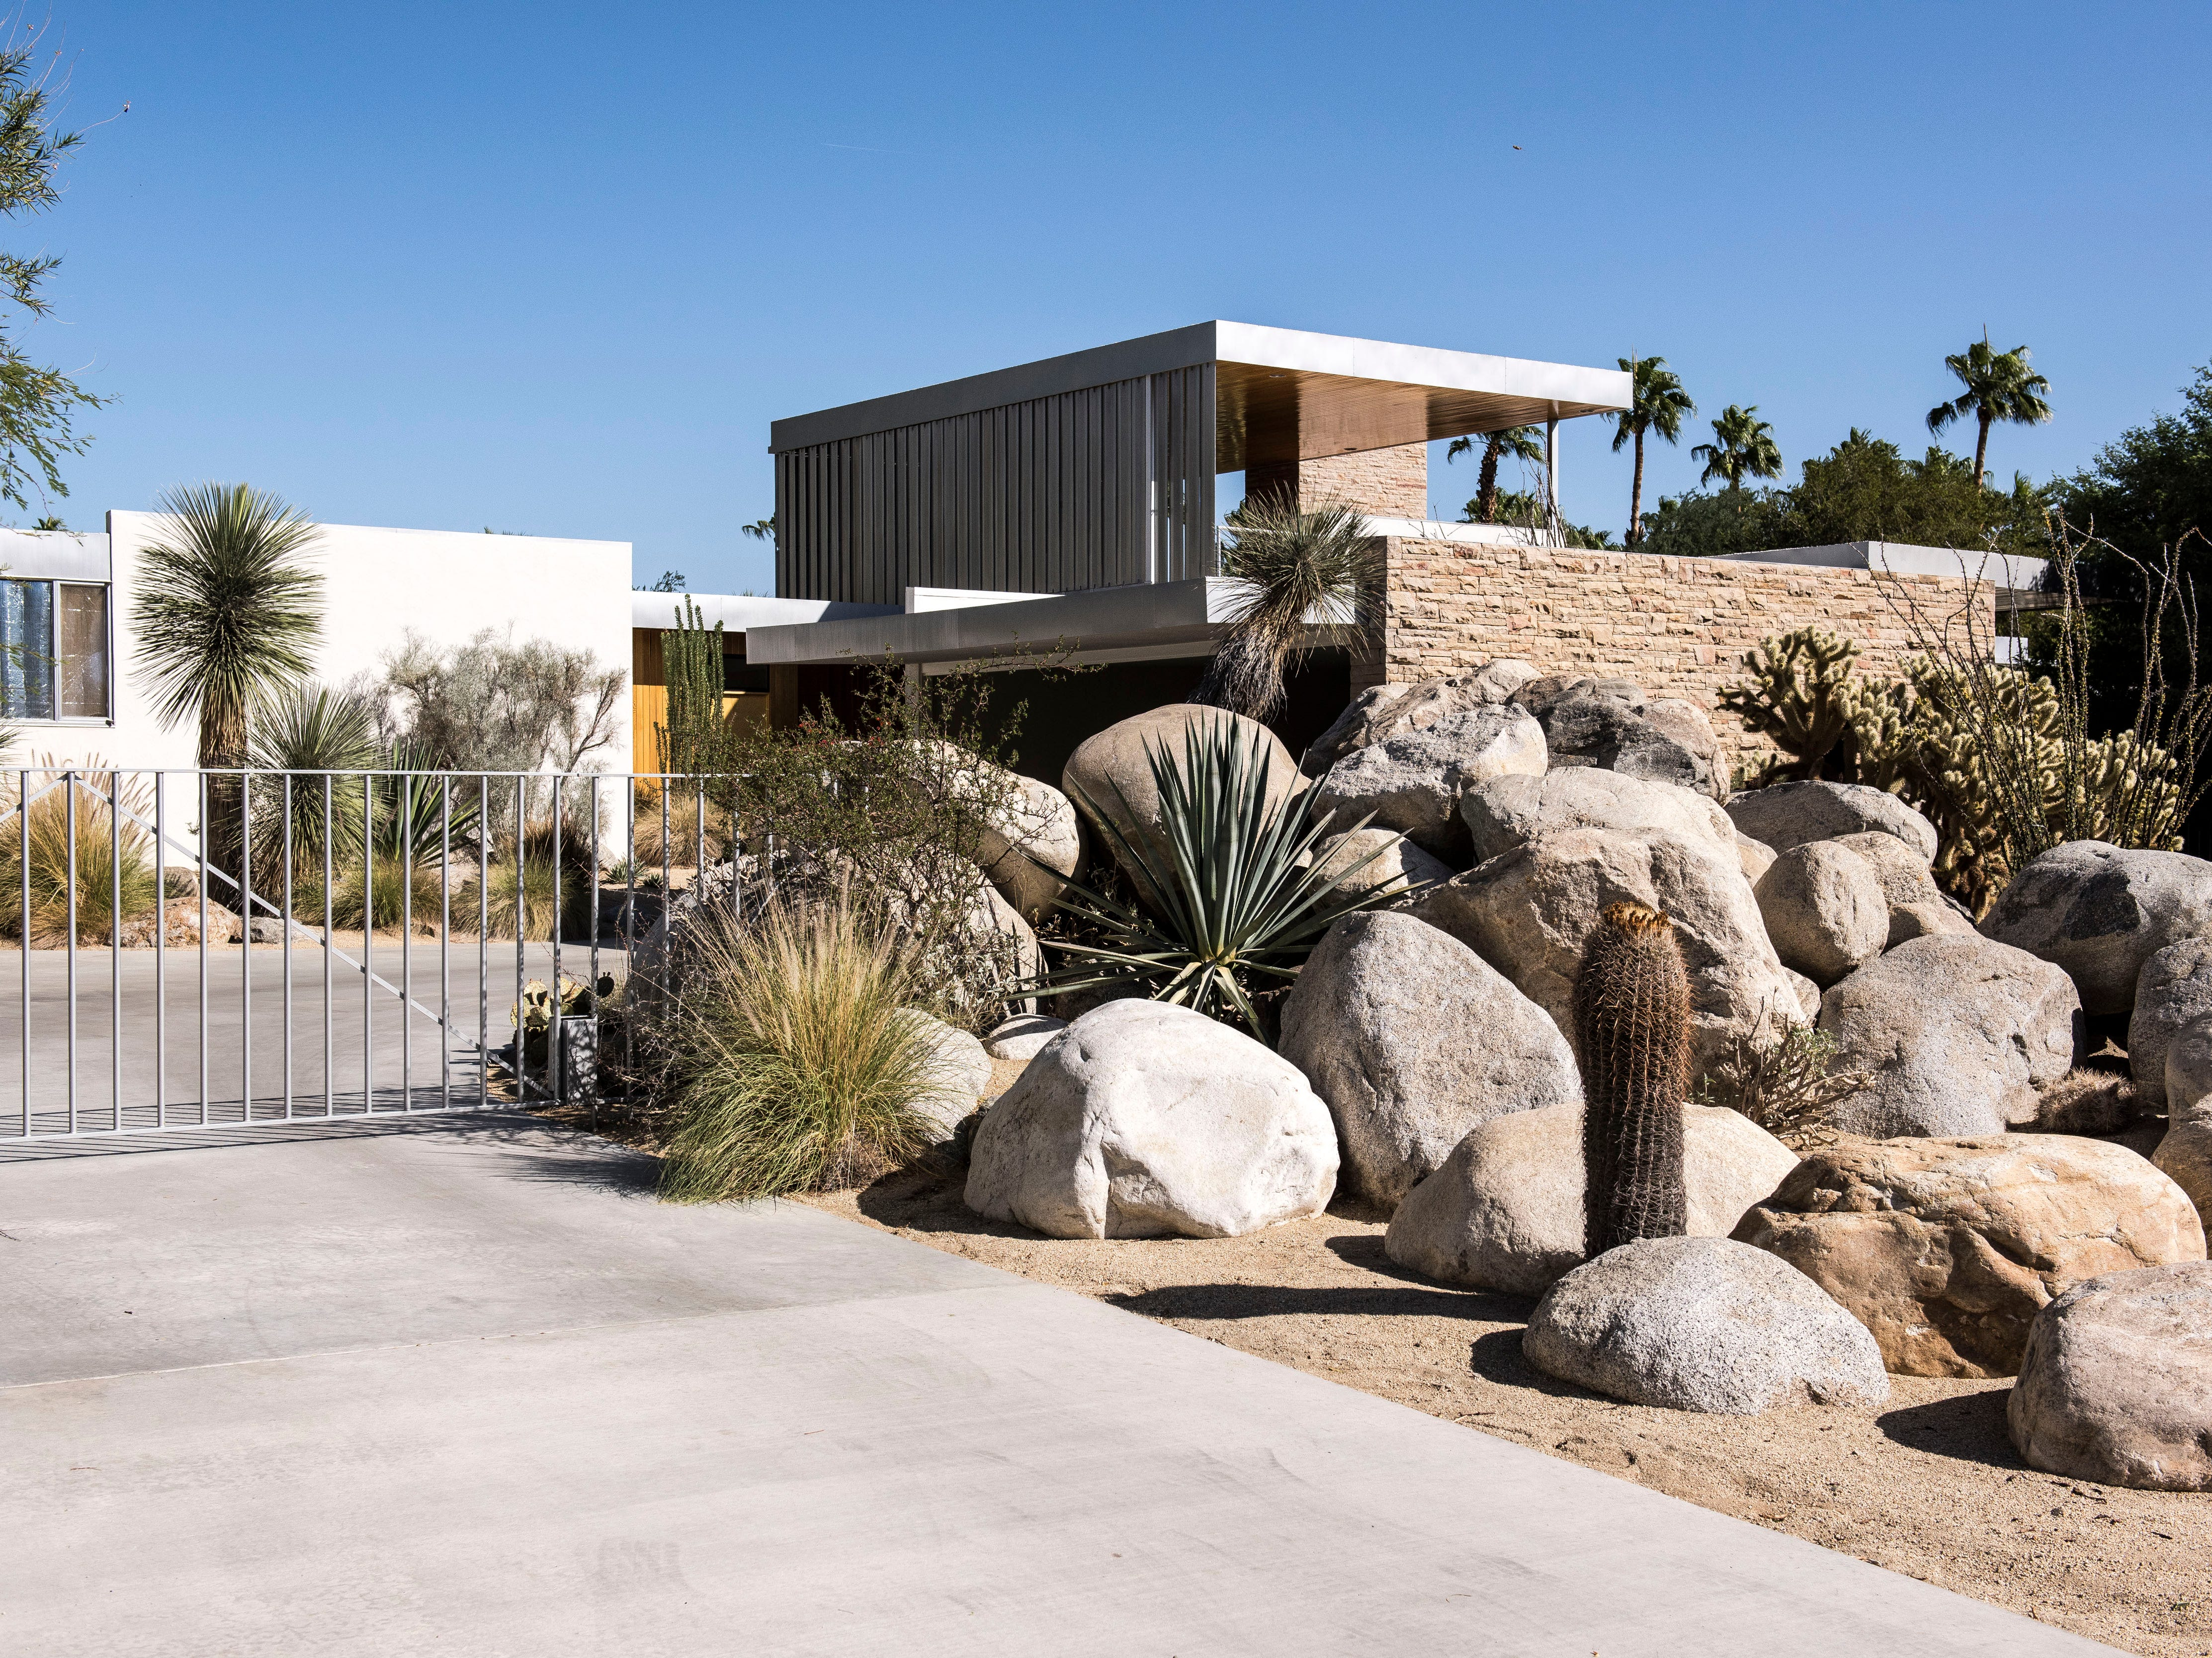 The Kaufmann House by Richard Neutra in Palm Springs